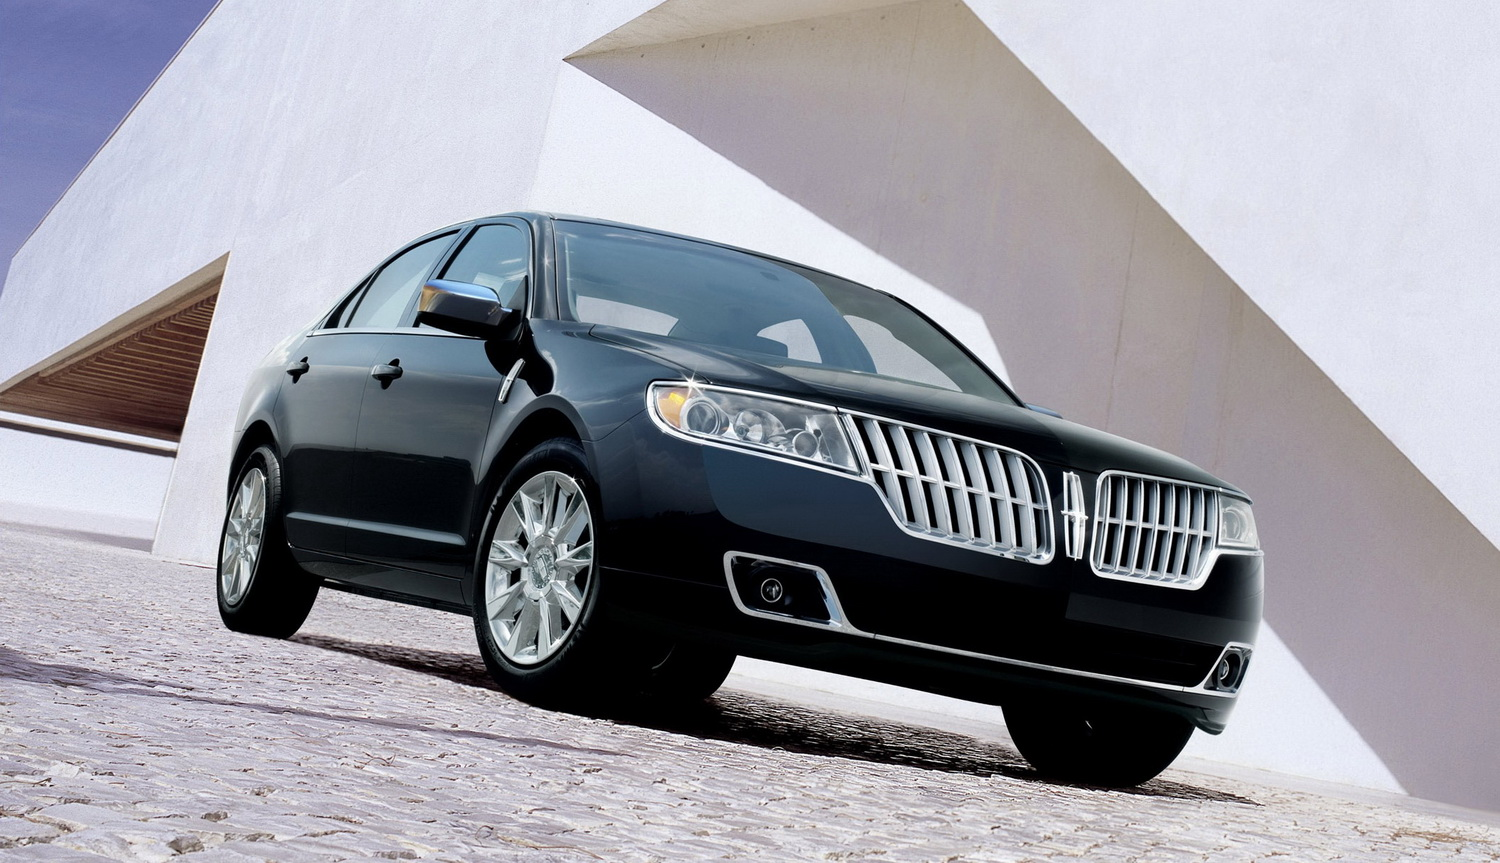 2010 Lincoln MKZ 4 2010 Lincoln MKZ Prices Announced, Starts Under $35k